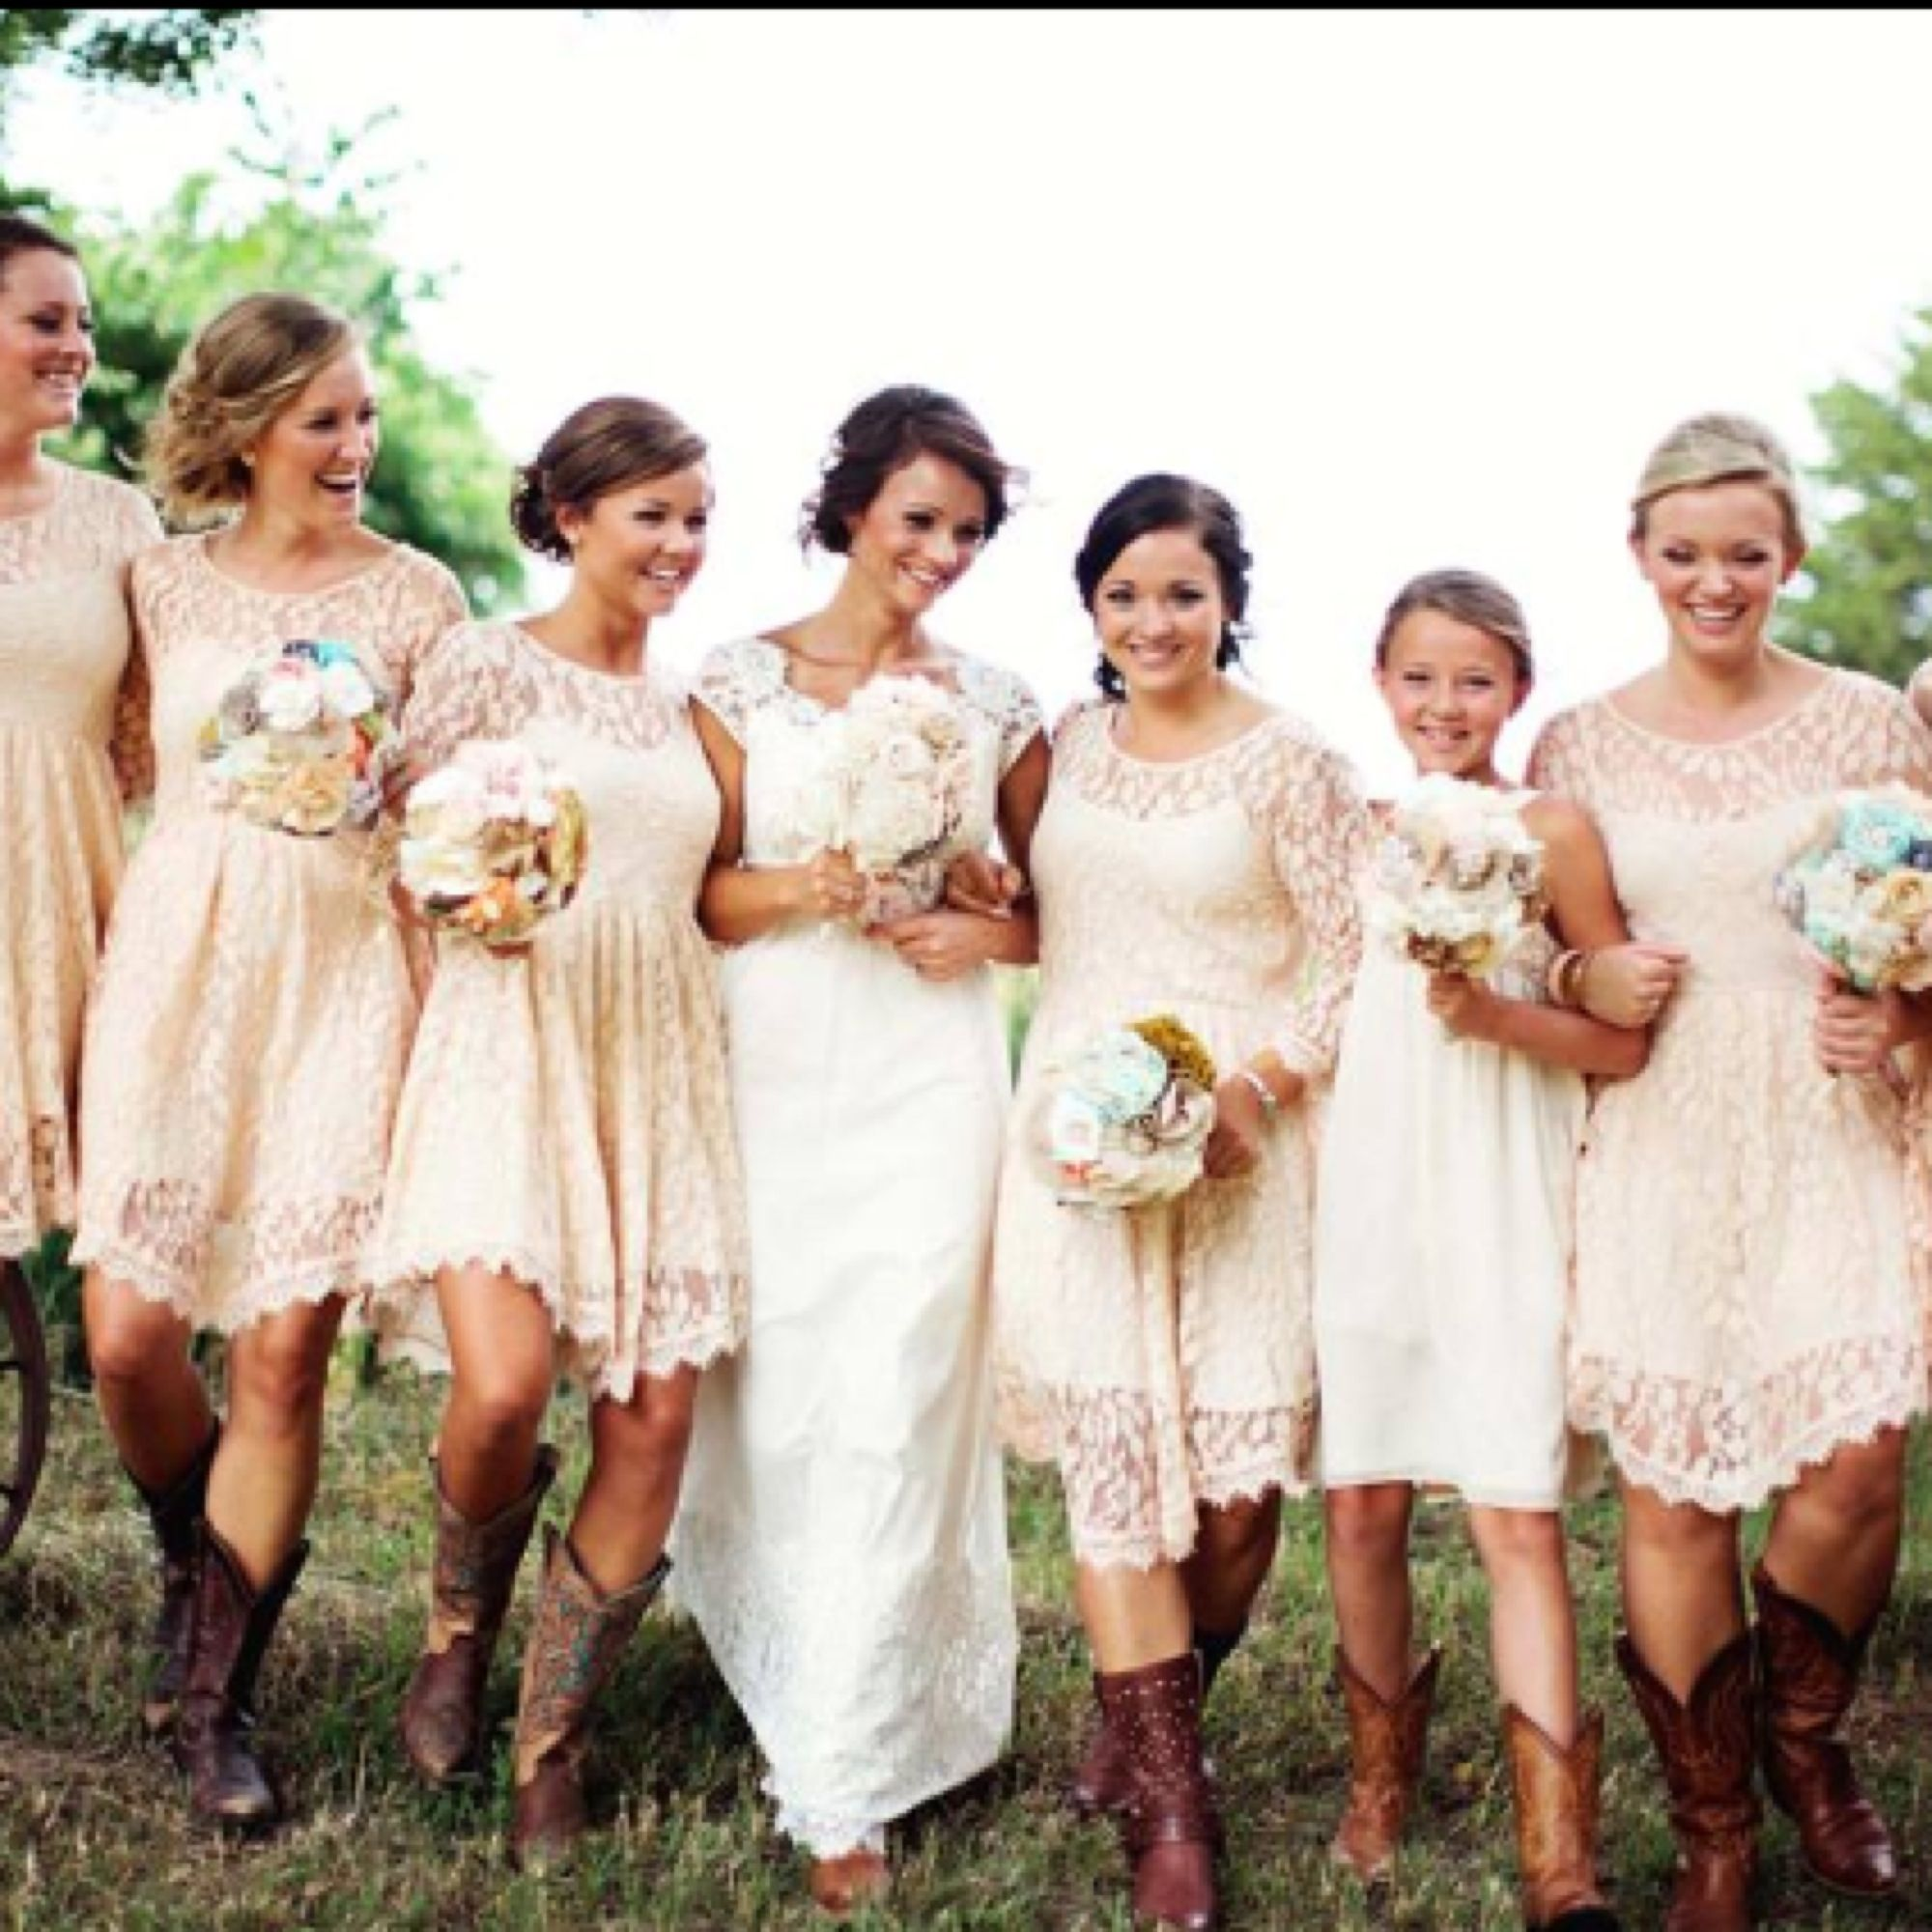 Cowgirls and lace country wedding rustic wedding pinterest knee length peach lace bridesmaid dresses vintage 2016 cheap long maid of honor dress formal gown ombrellifo Images